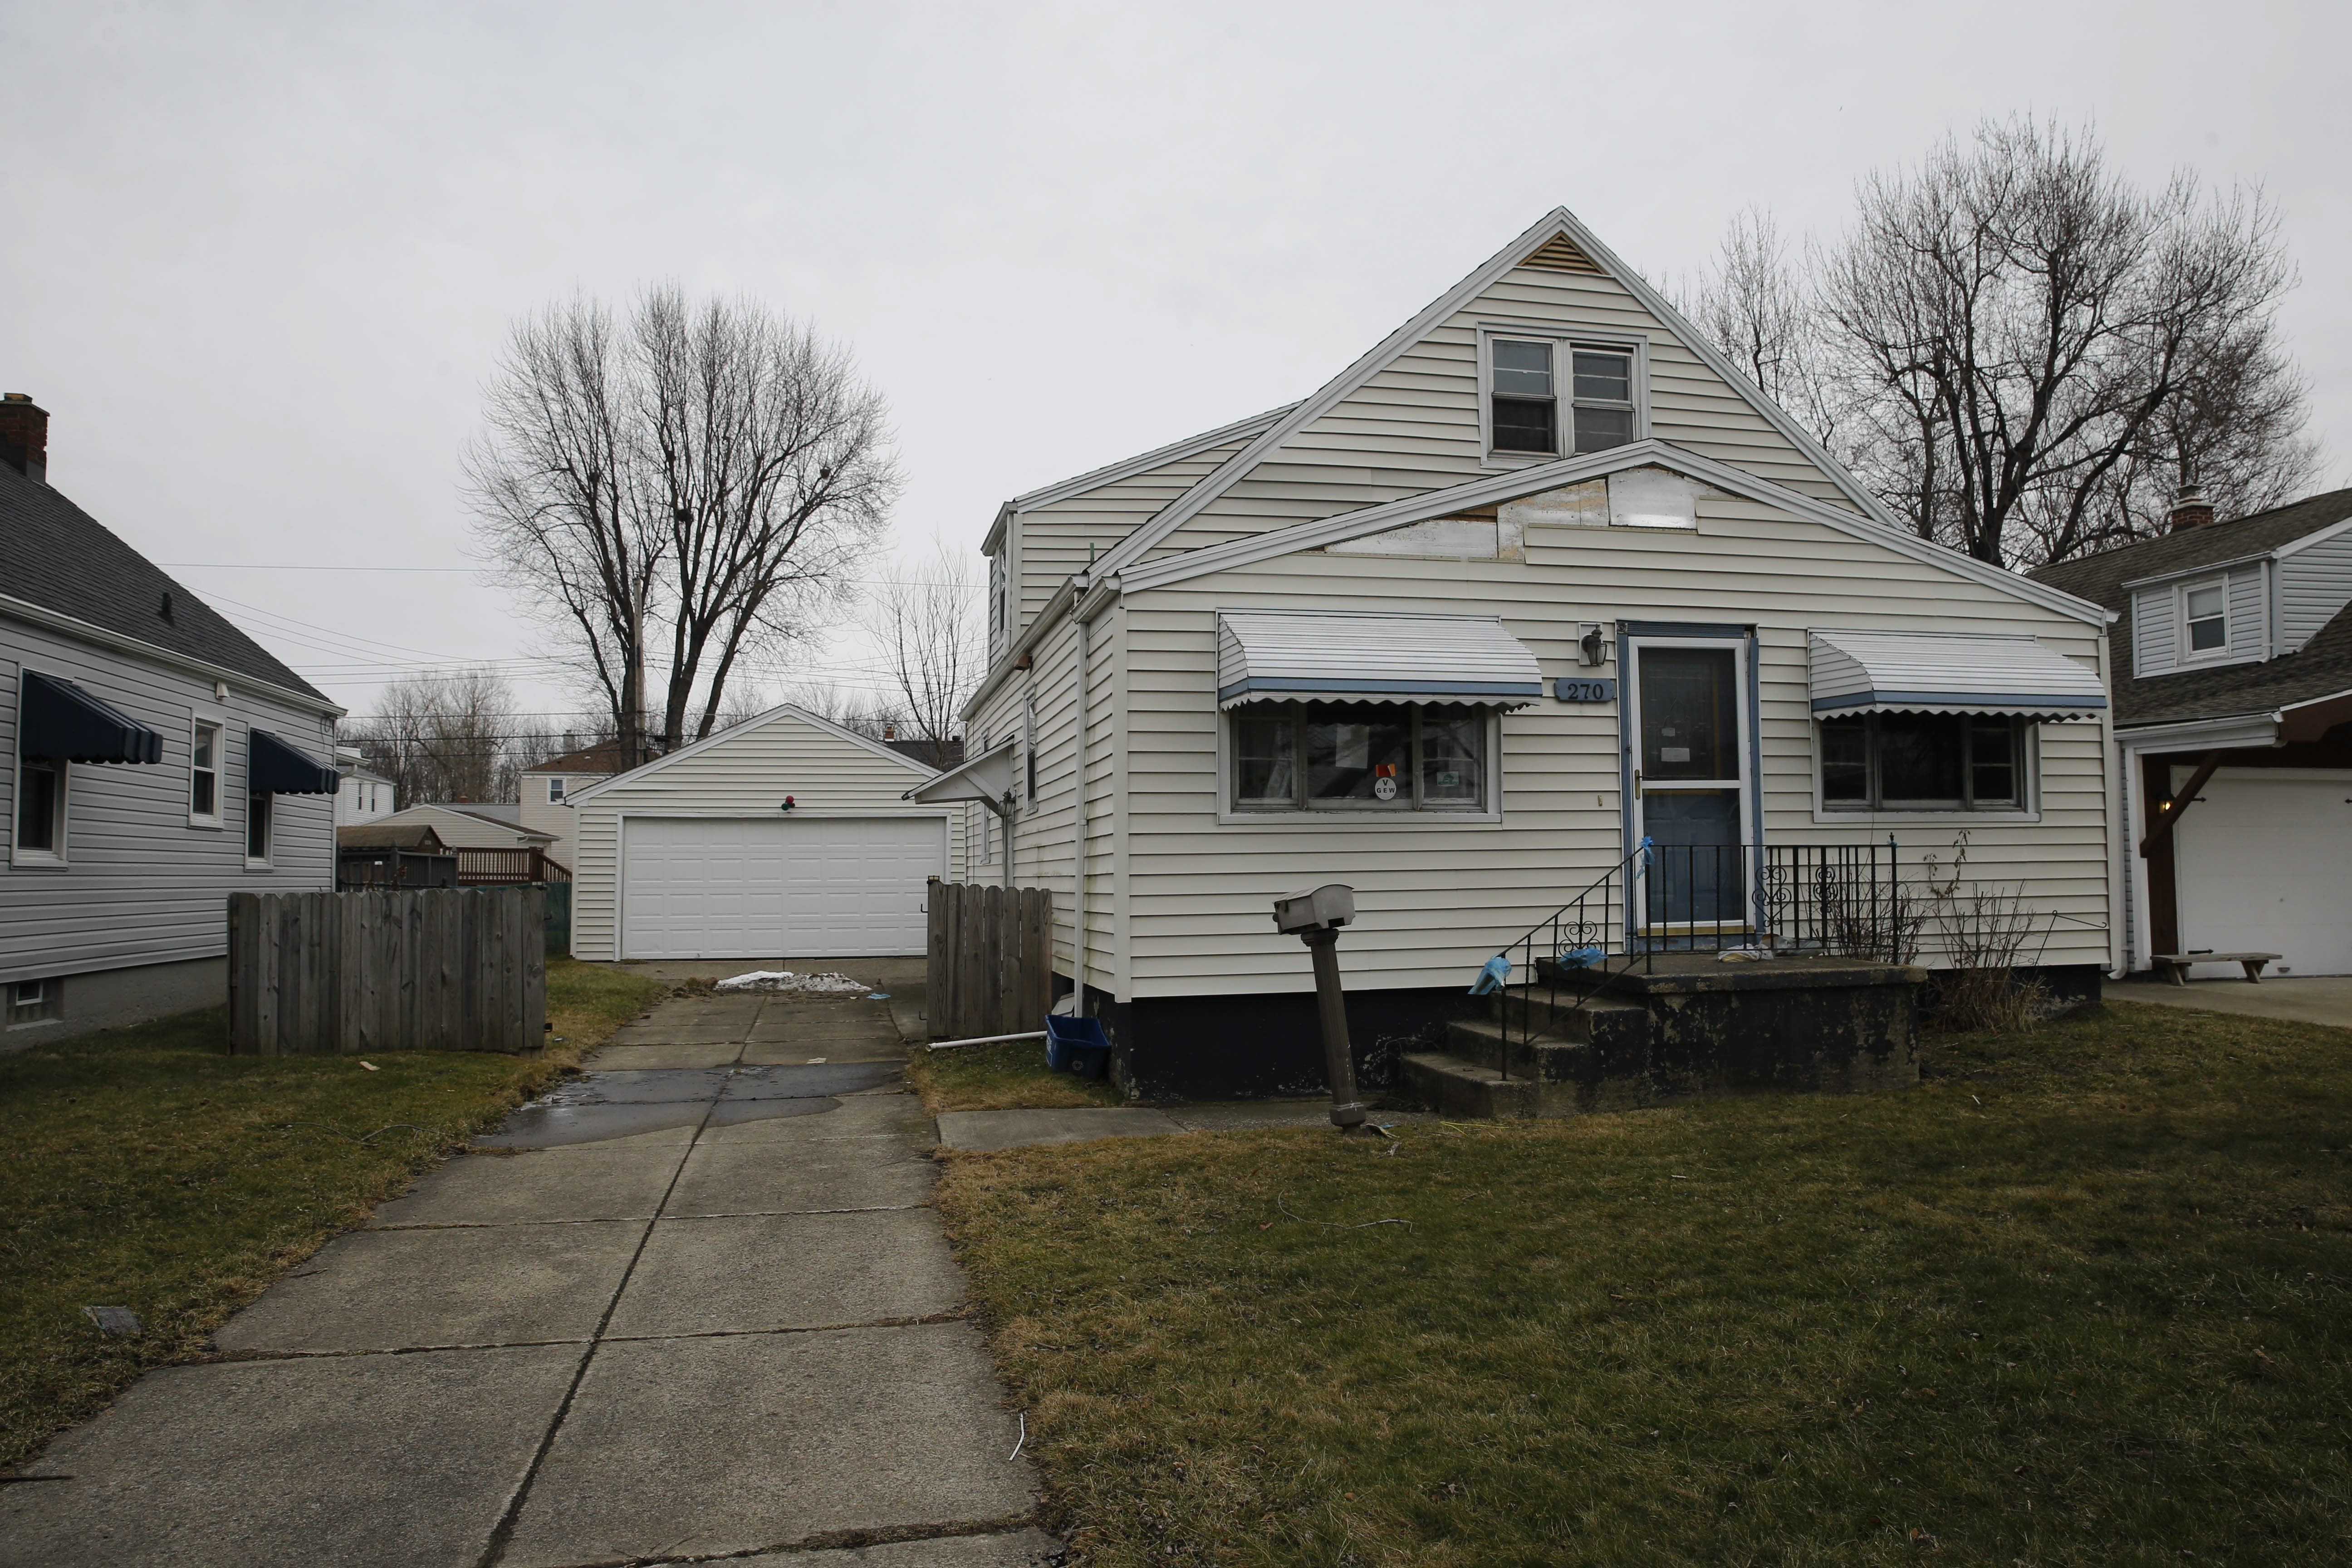 Abandoned homes awaiting completion of the foreclosure process, like this house at 270 Tudor Blvd. in West Seneca, are often left to deteriorate and can eventually harm neighborhoods. (Derek Gee/Buffalo News)